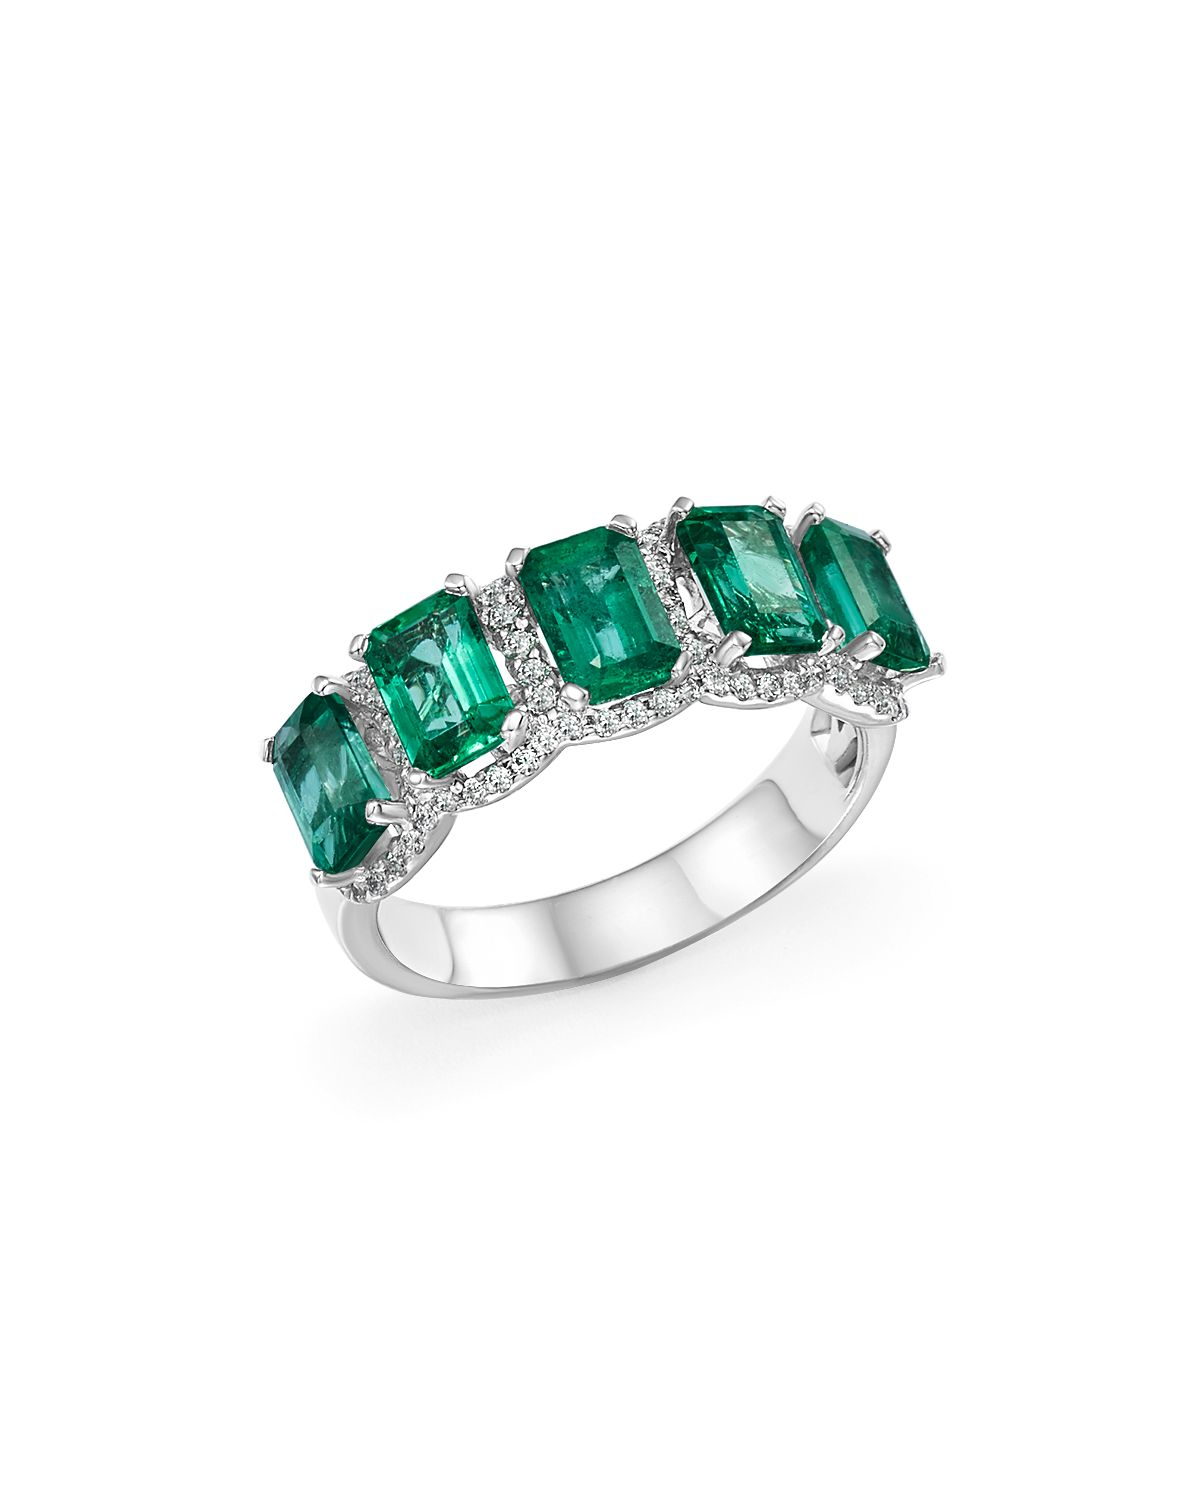 Emerald And Diamond Band Ring In 14 K White Gold   100% Exclusive  by Bloomingdale's